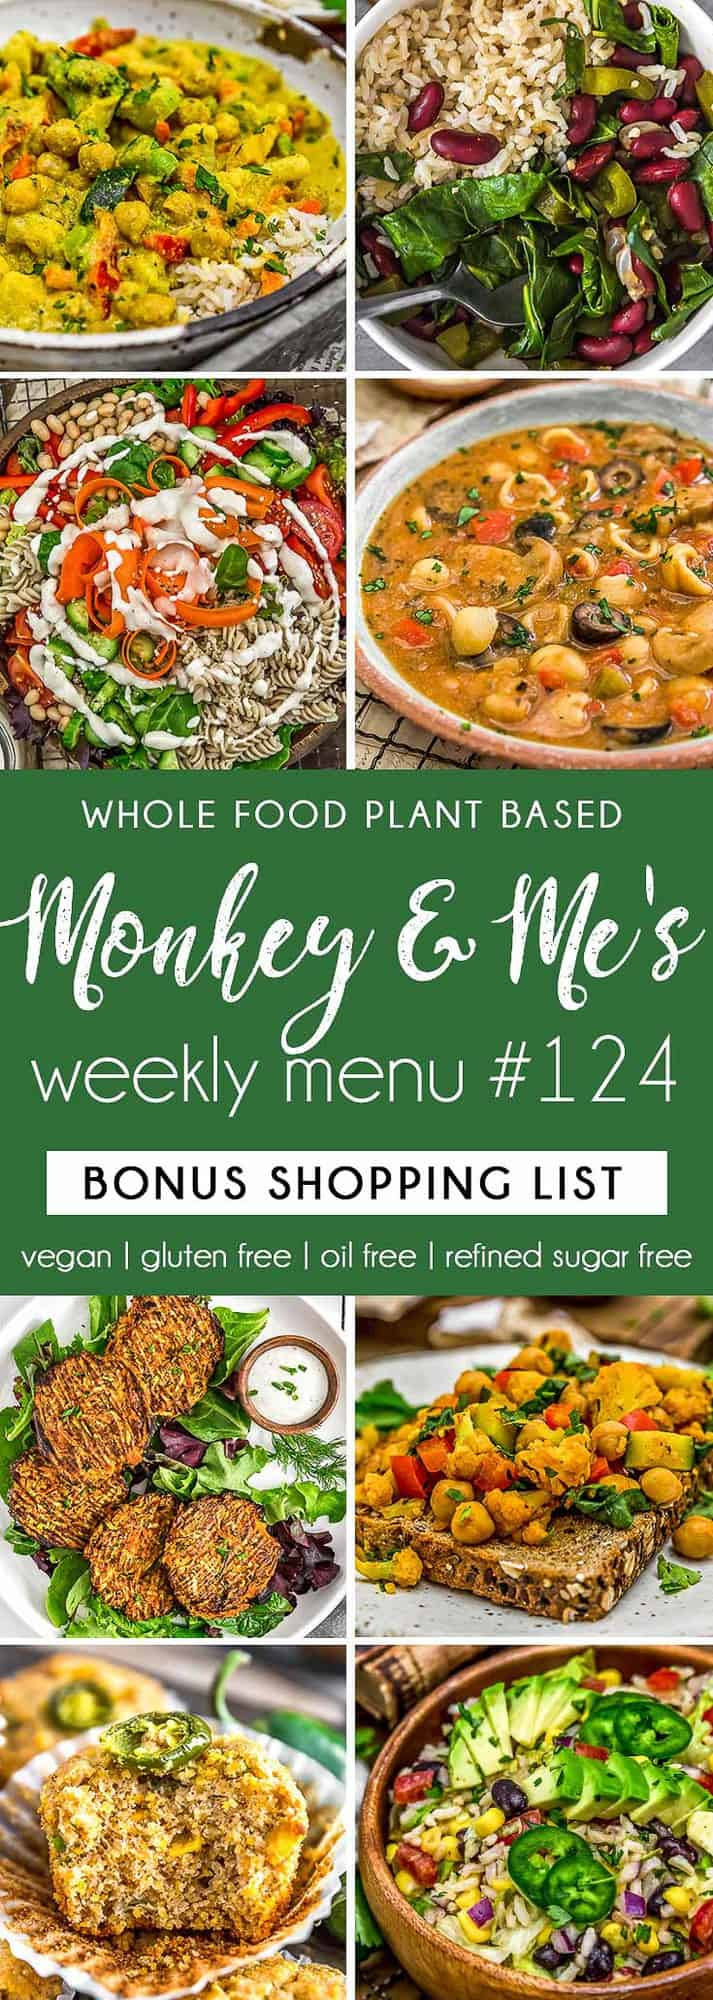 Monkey and Me's Menu 124 featuring 8 recipes